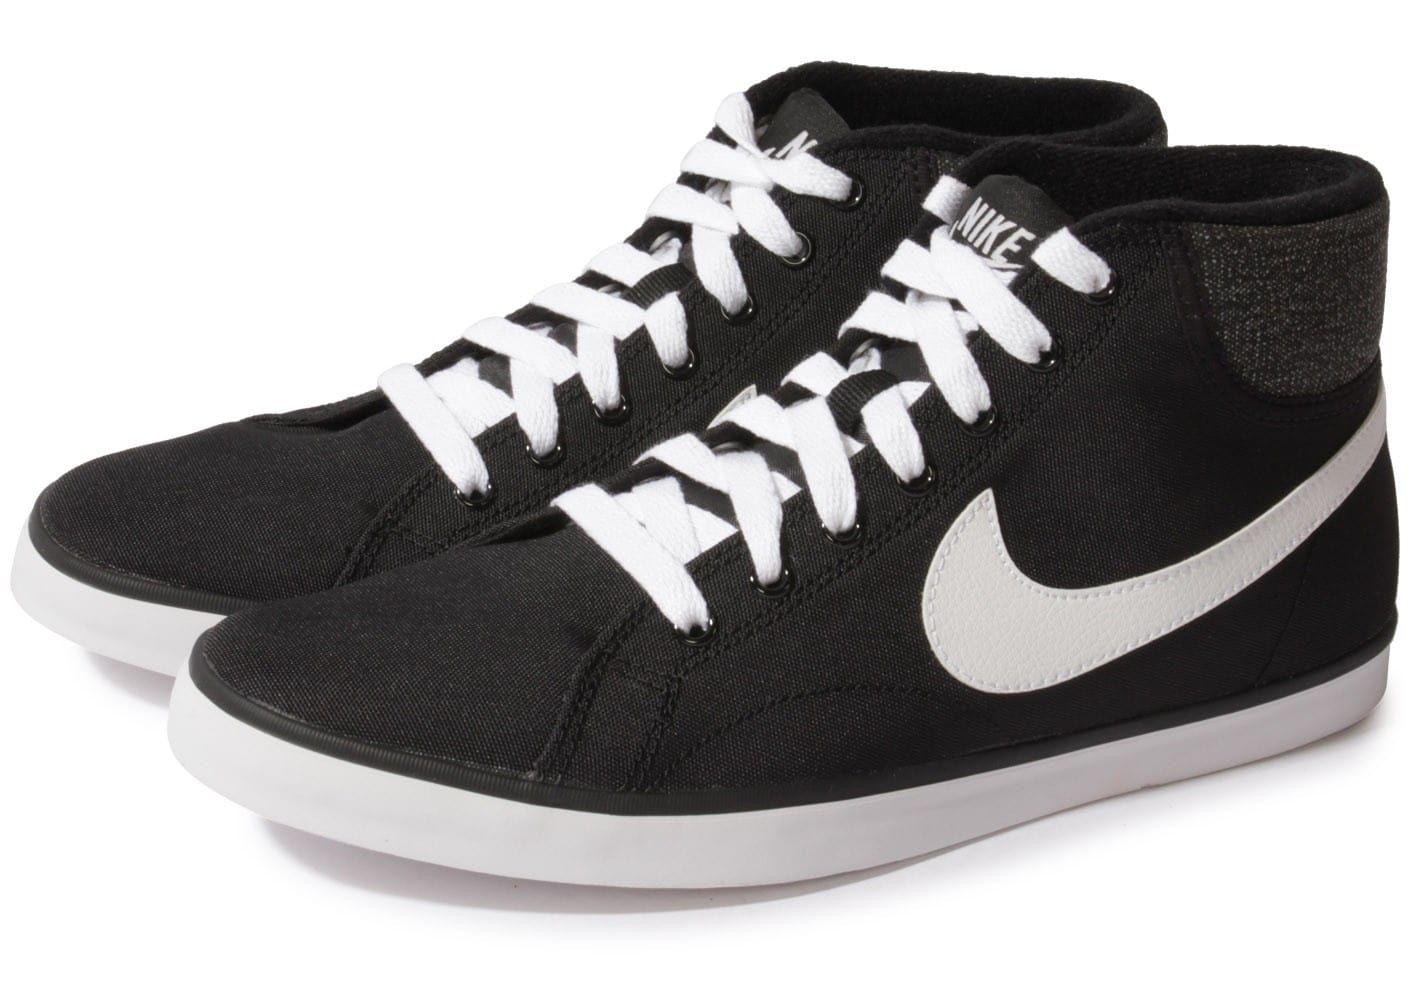 Nike Eastham Mid Noire Chaussures Baskets homme Chausport